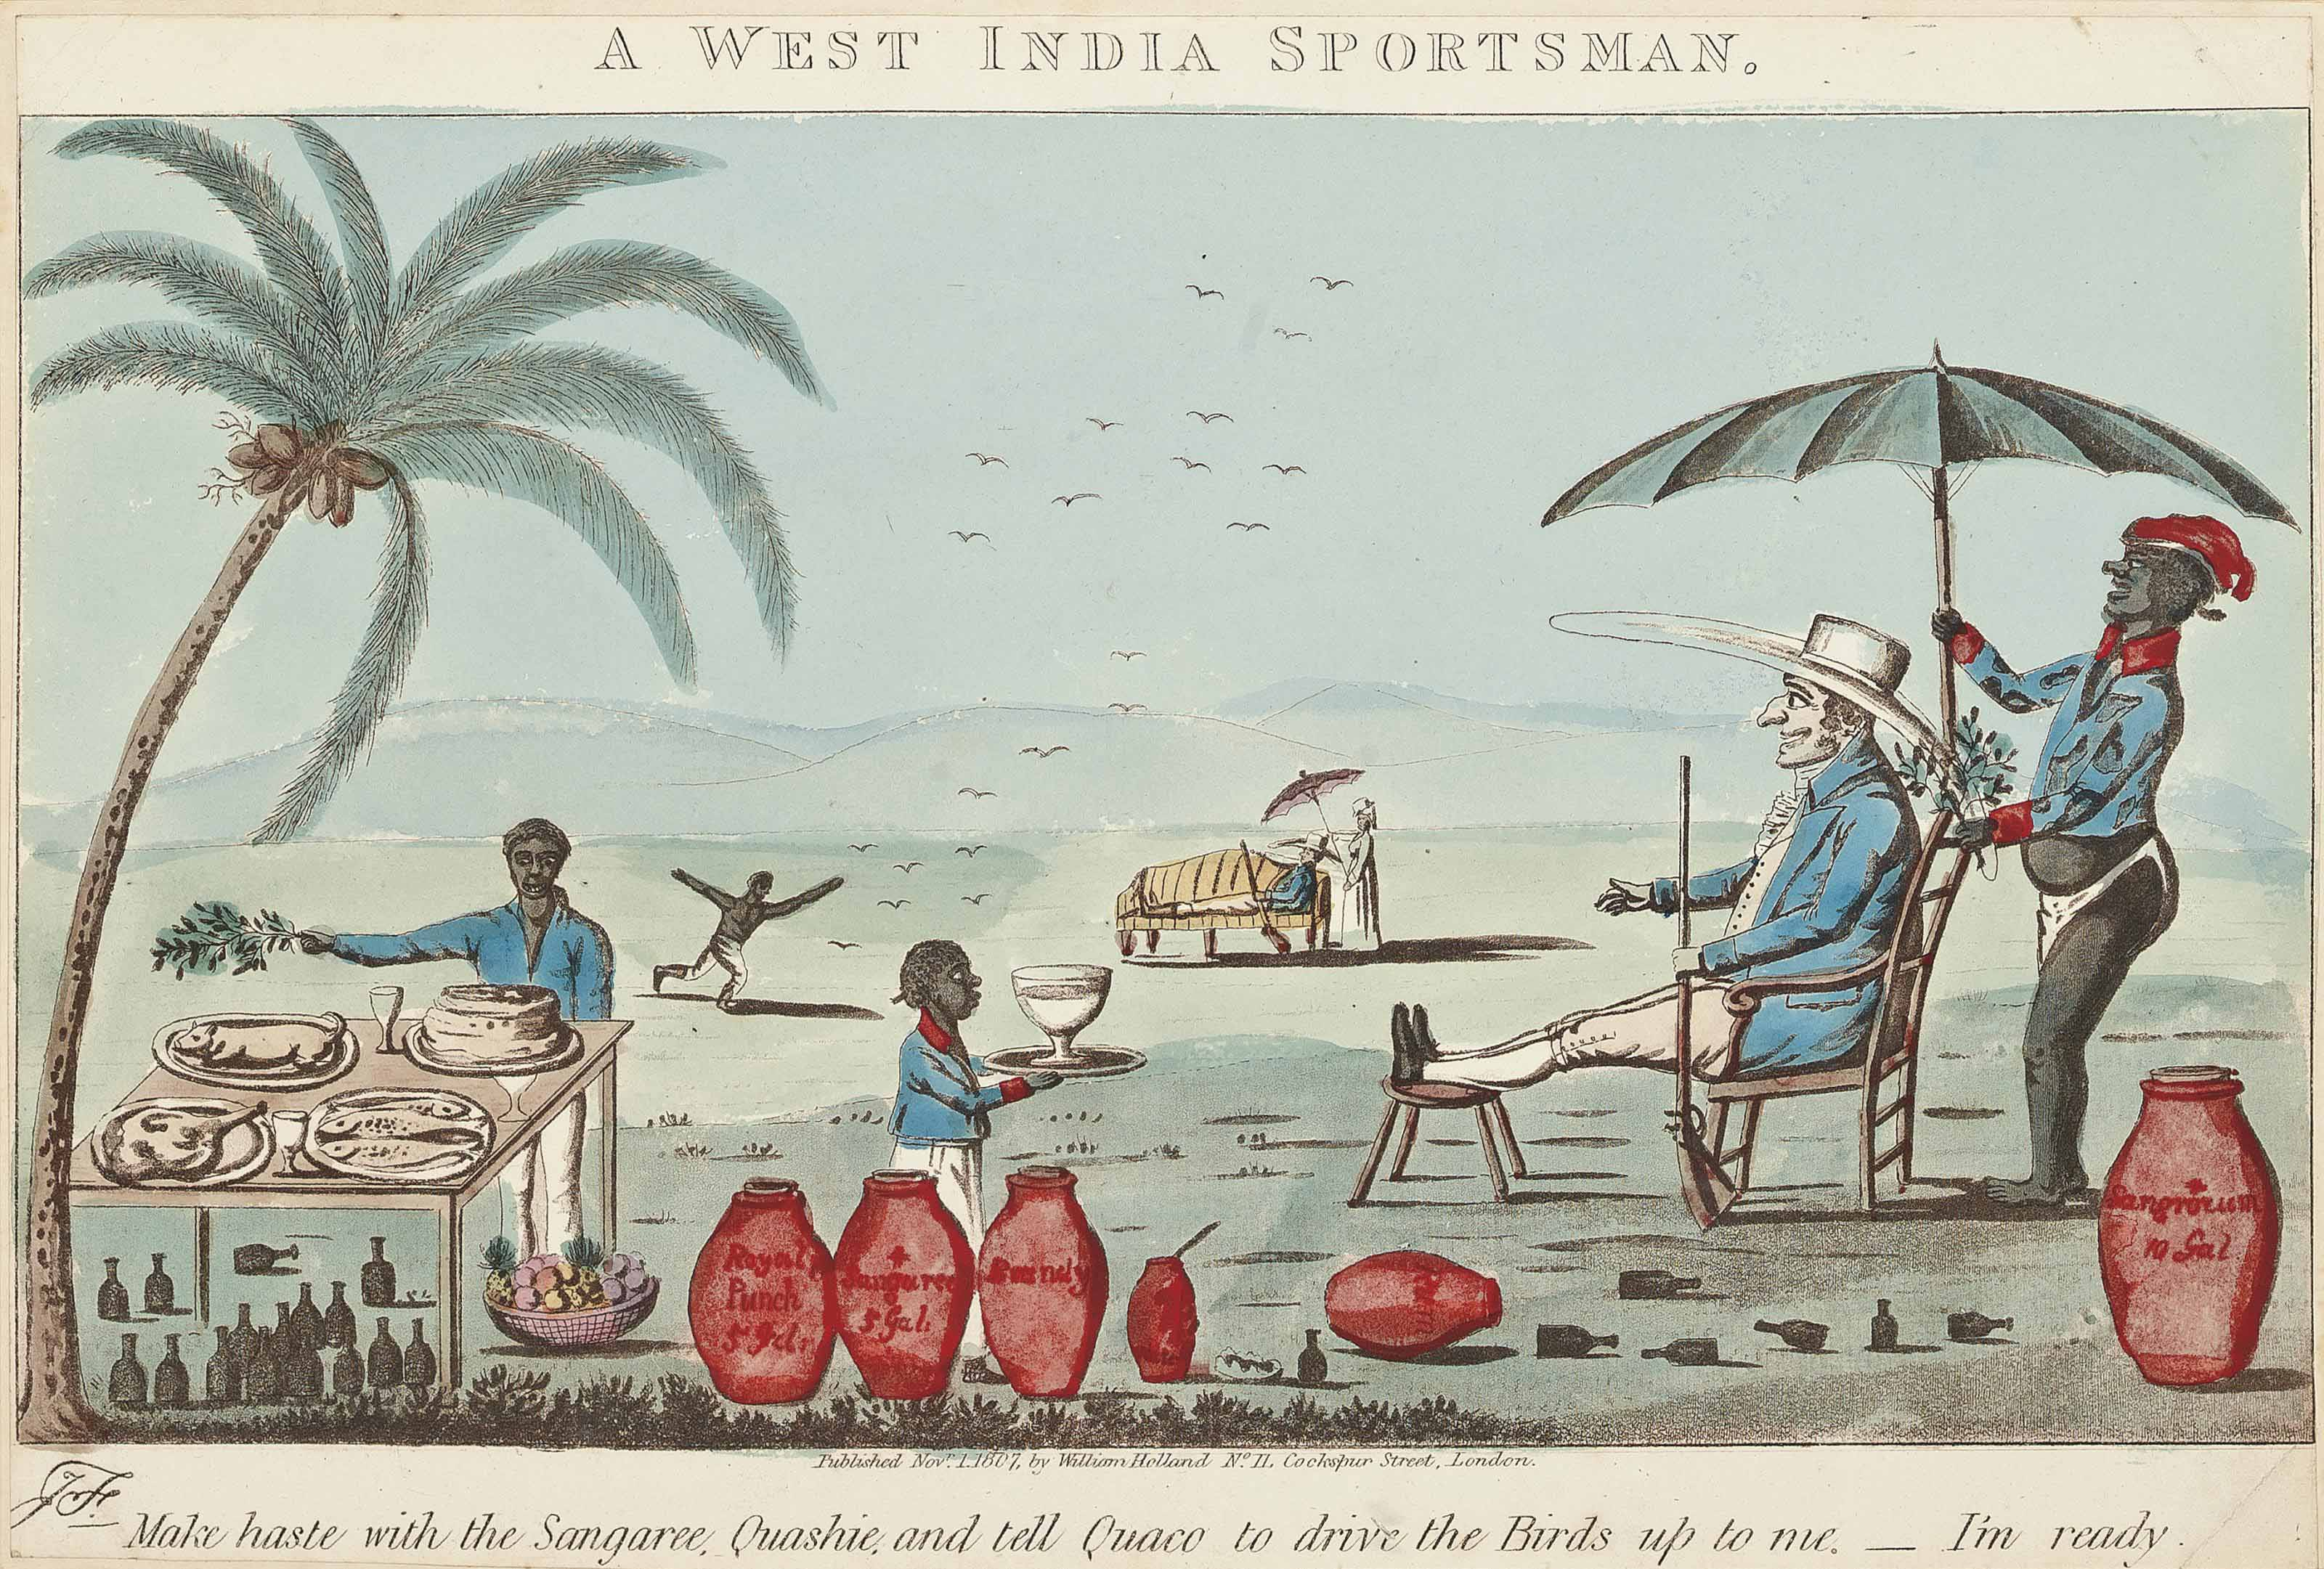 A West India Sportsman. Make haste with the Sangaree, Quashie, and tell Quaco to drive the birds up to me. - I'm ready.; West India Luxury!!; and West India Fashionables., On a visit in style. Taking a ride.